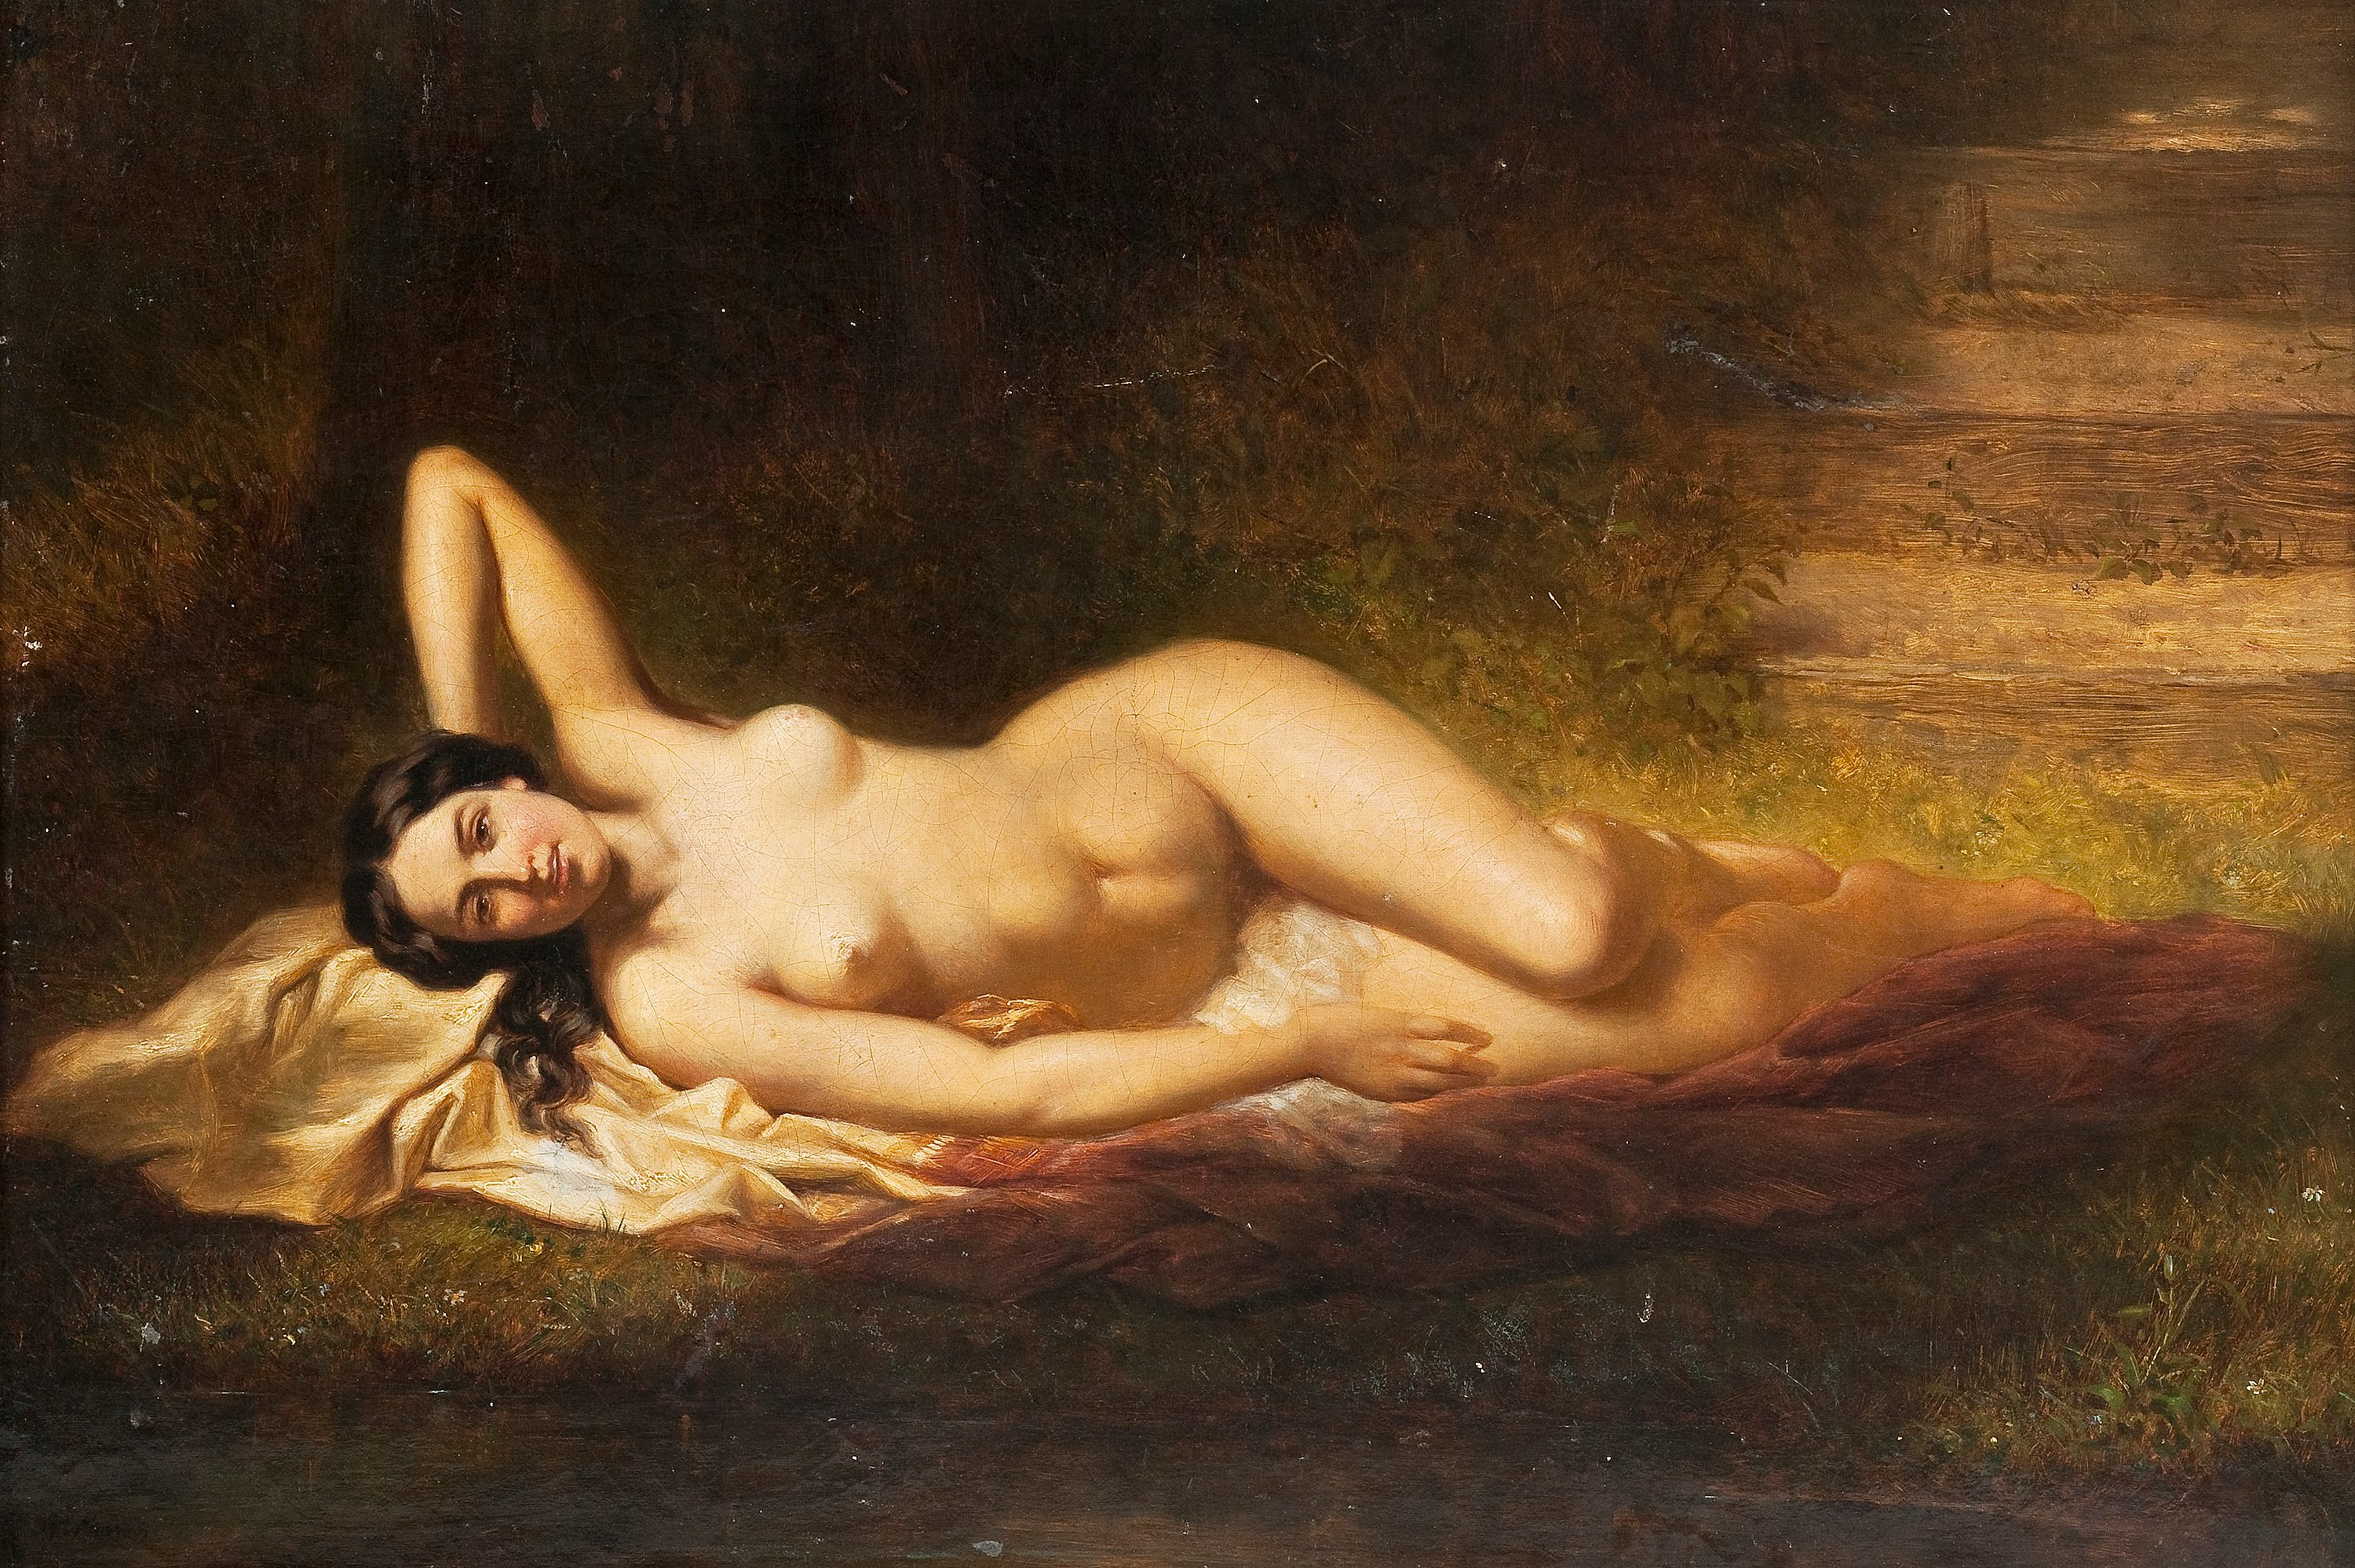 Reclining nude art photography where can